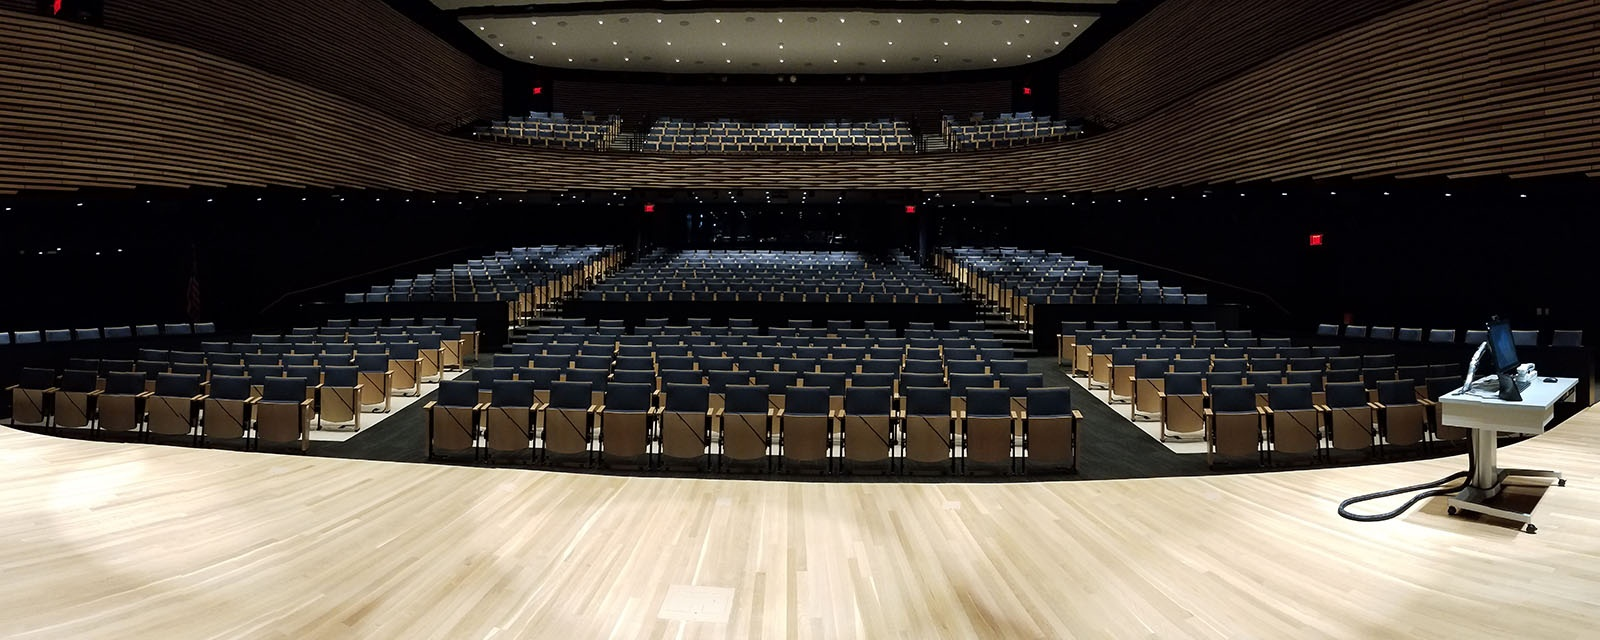 Panorama of KG Tan Auditorium from the teachers view. There  is a stage with an ADA complaint Teaching station to the right. There is two tiers of seating.